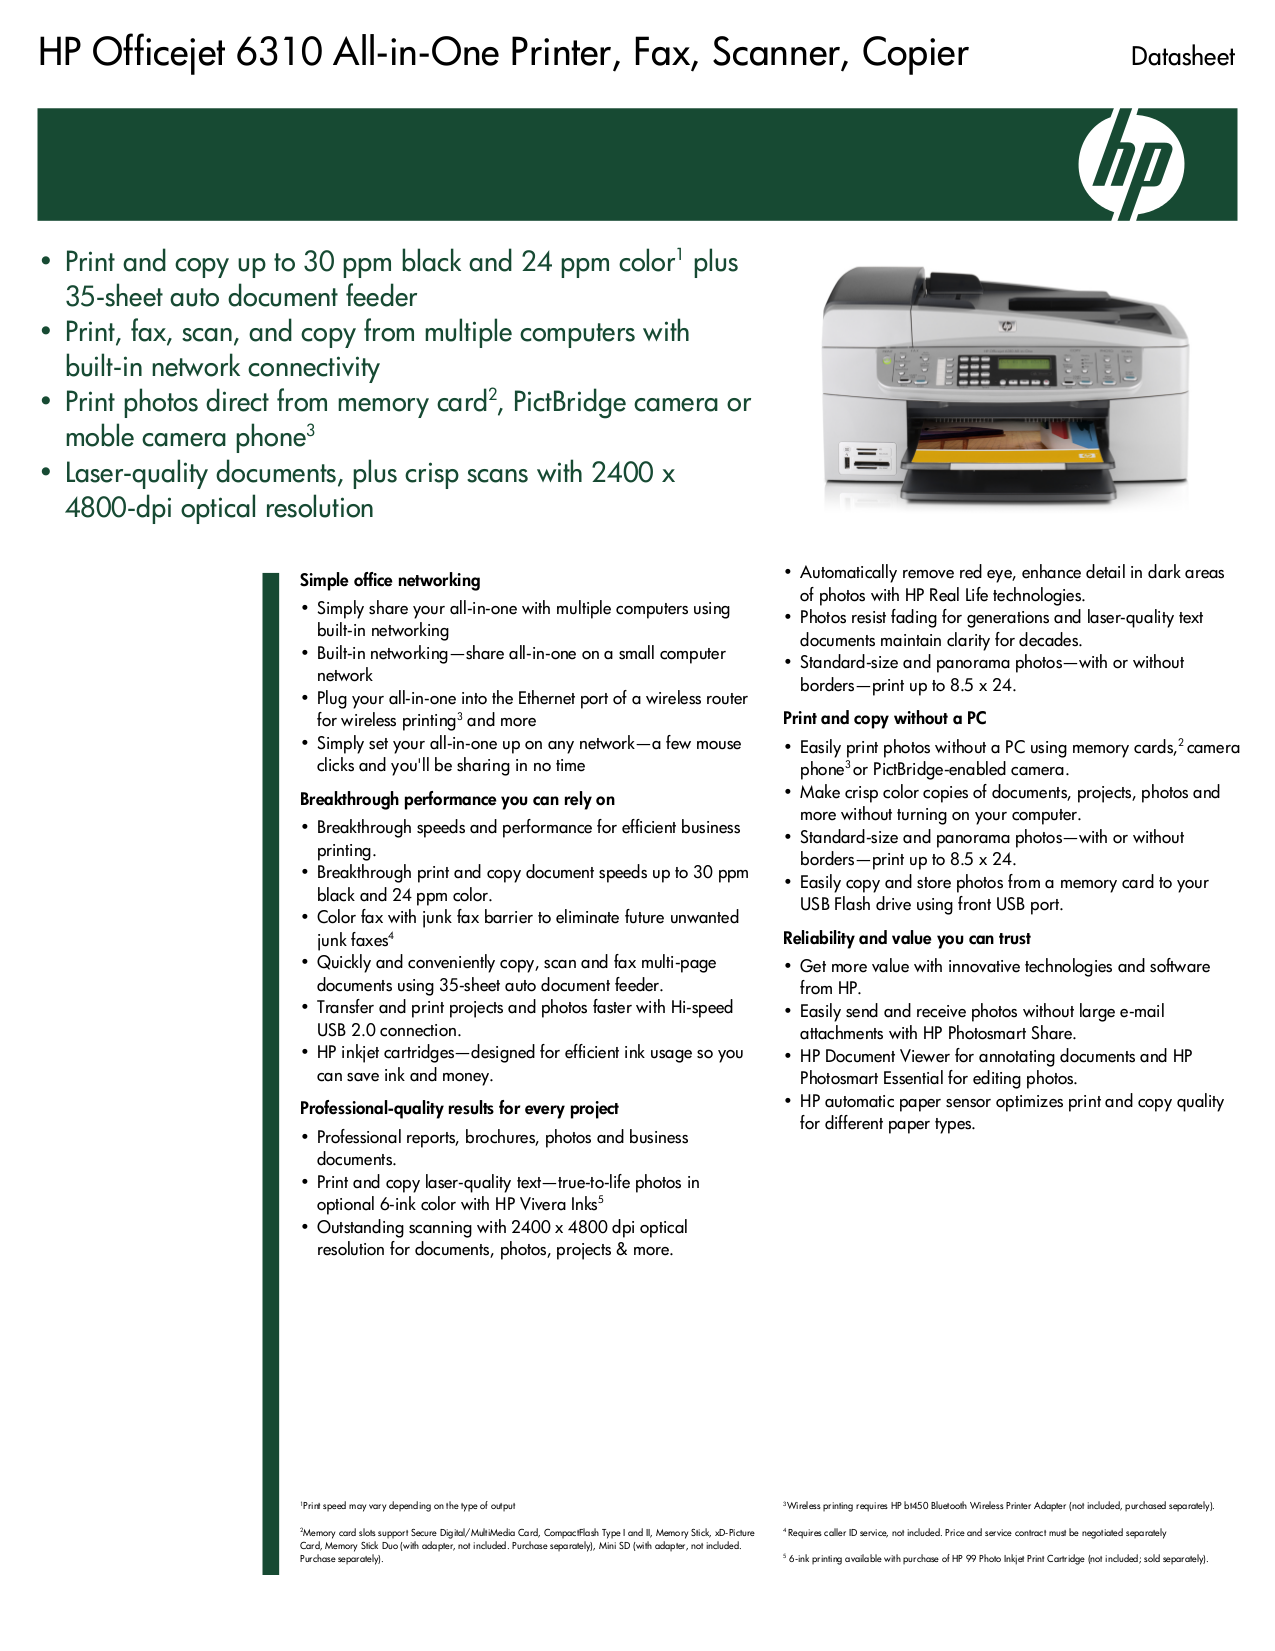 hp 1510 printer manual pdf